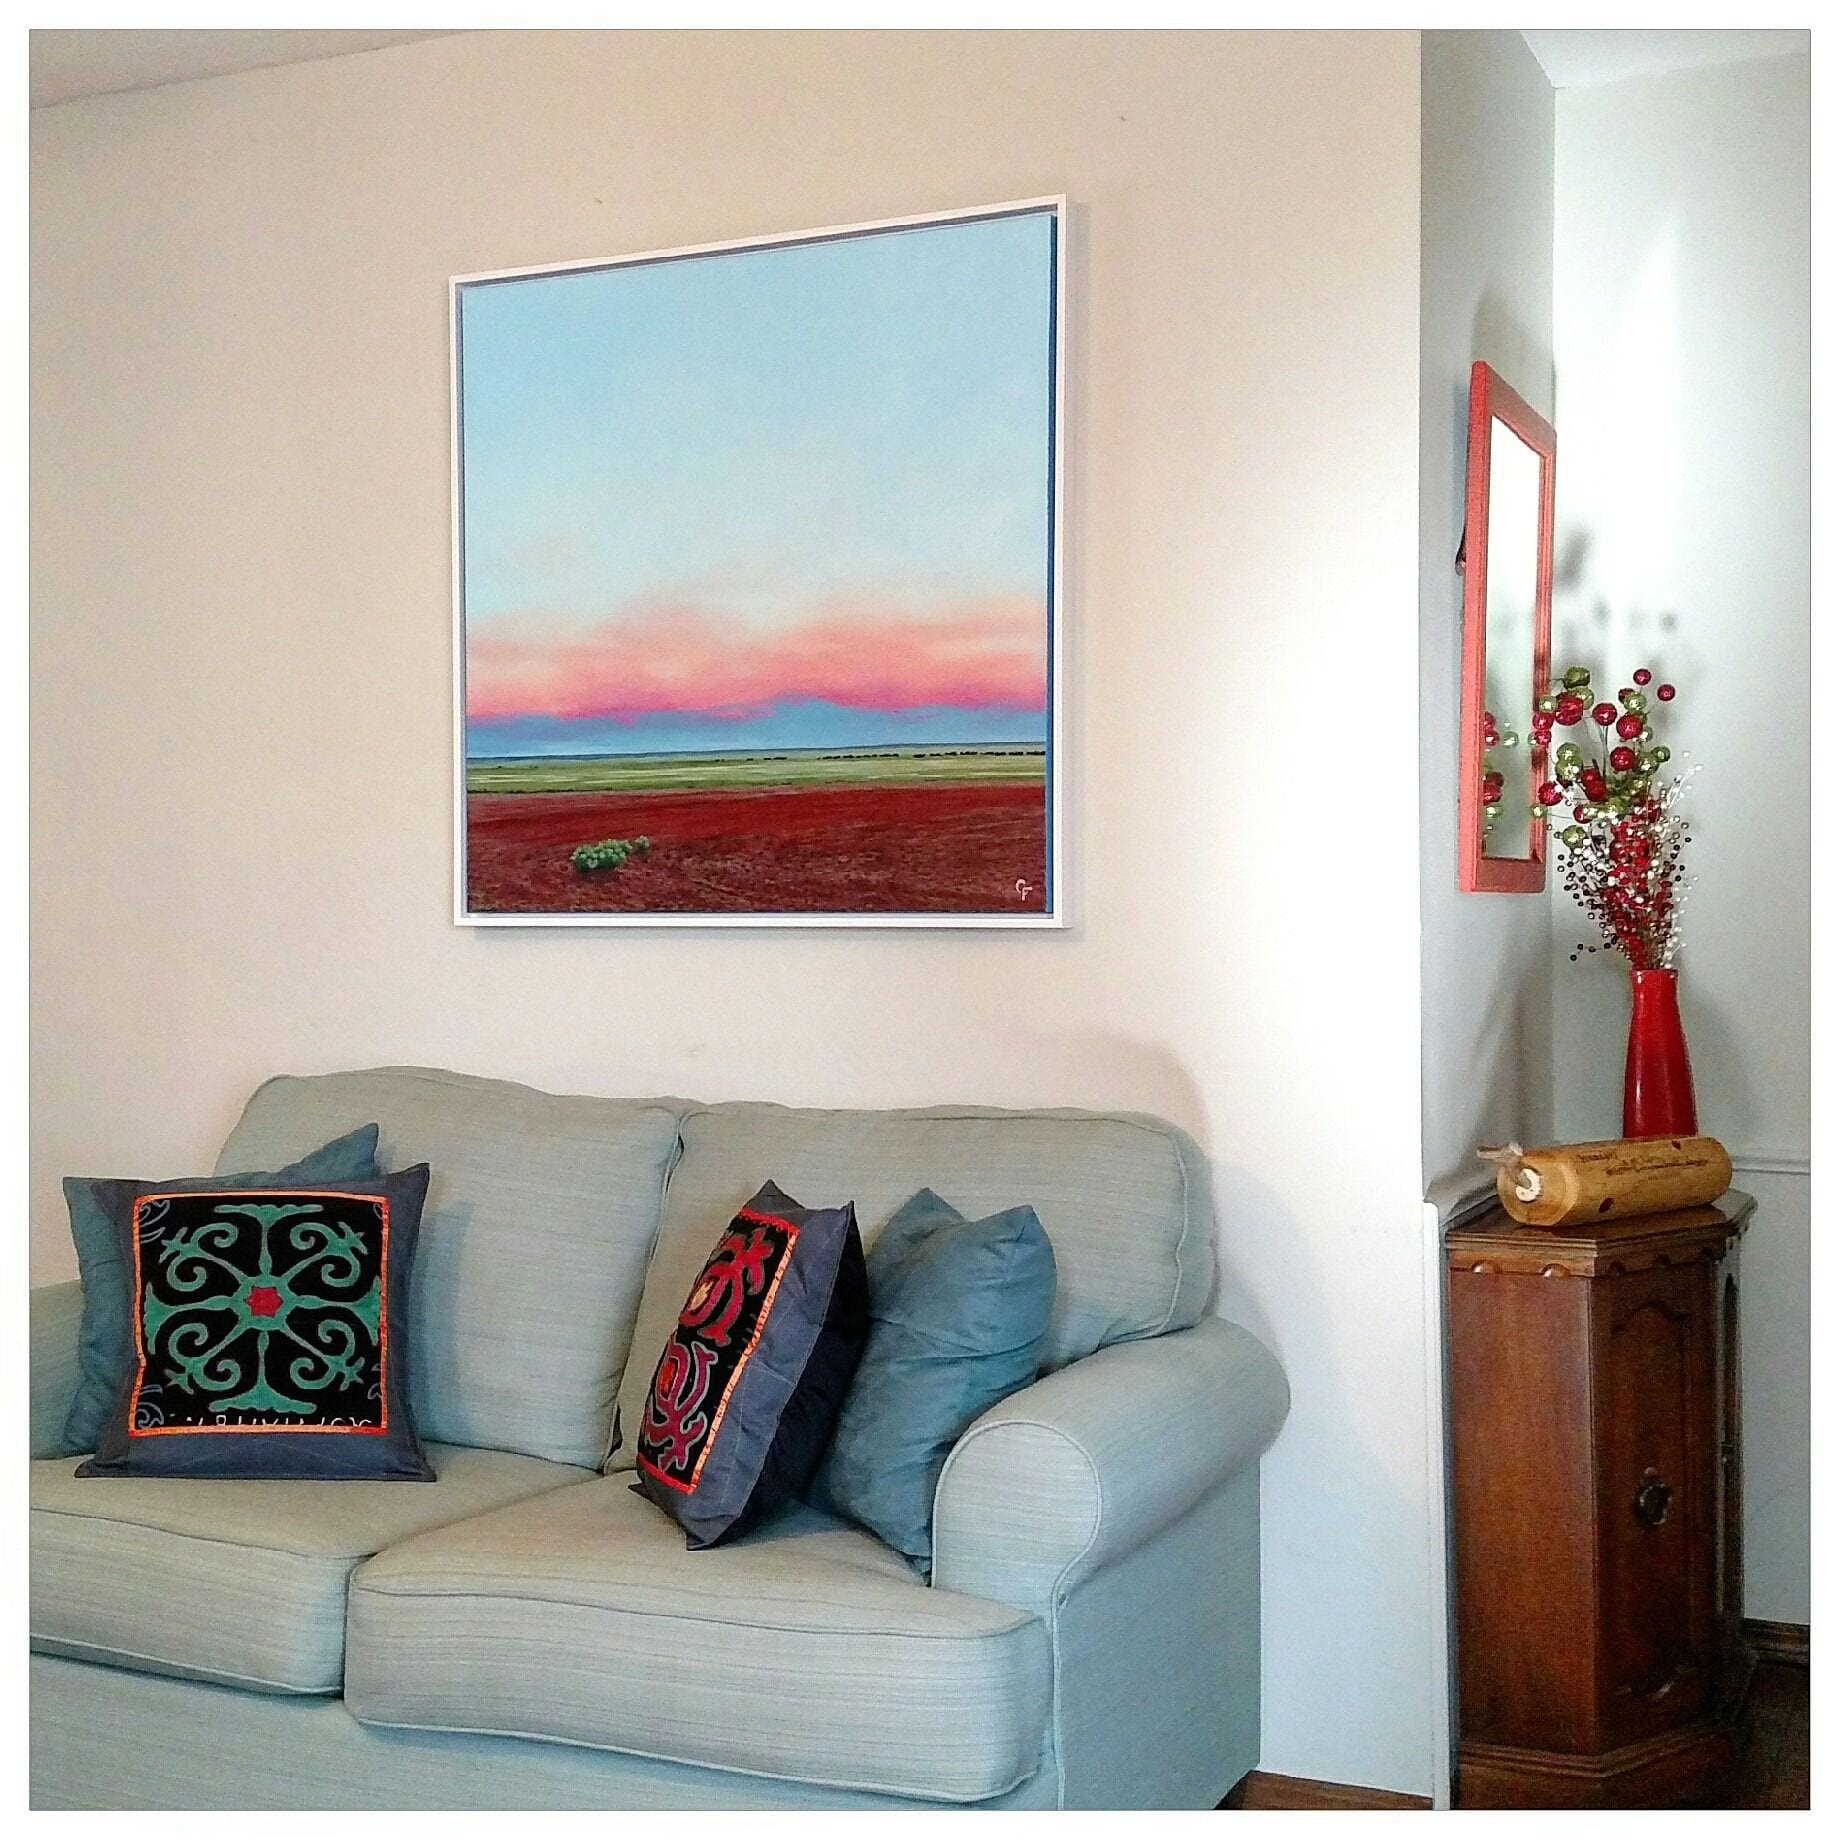 Canvas Art Framed on Wall in Room Environment